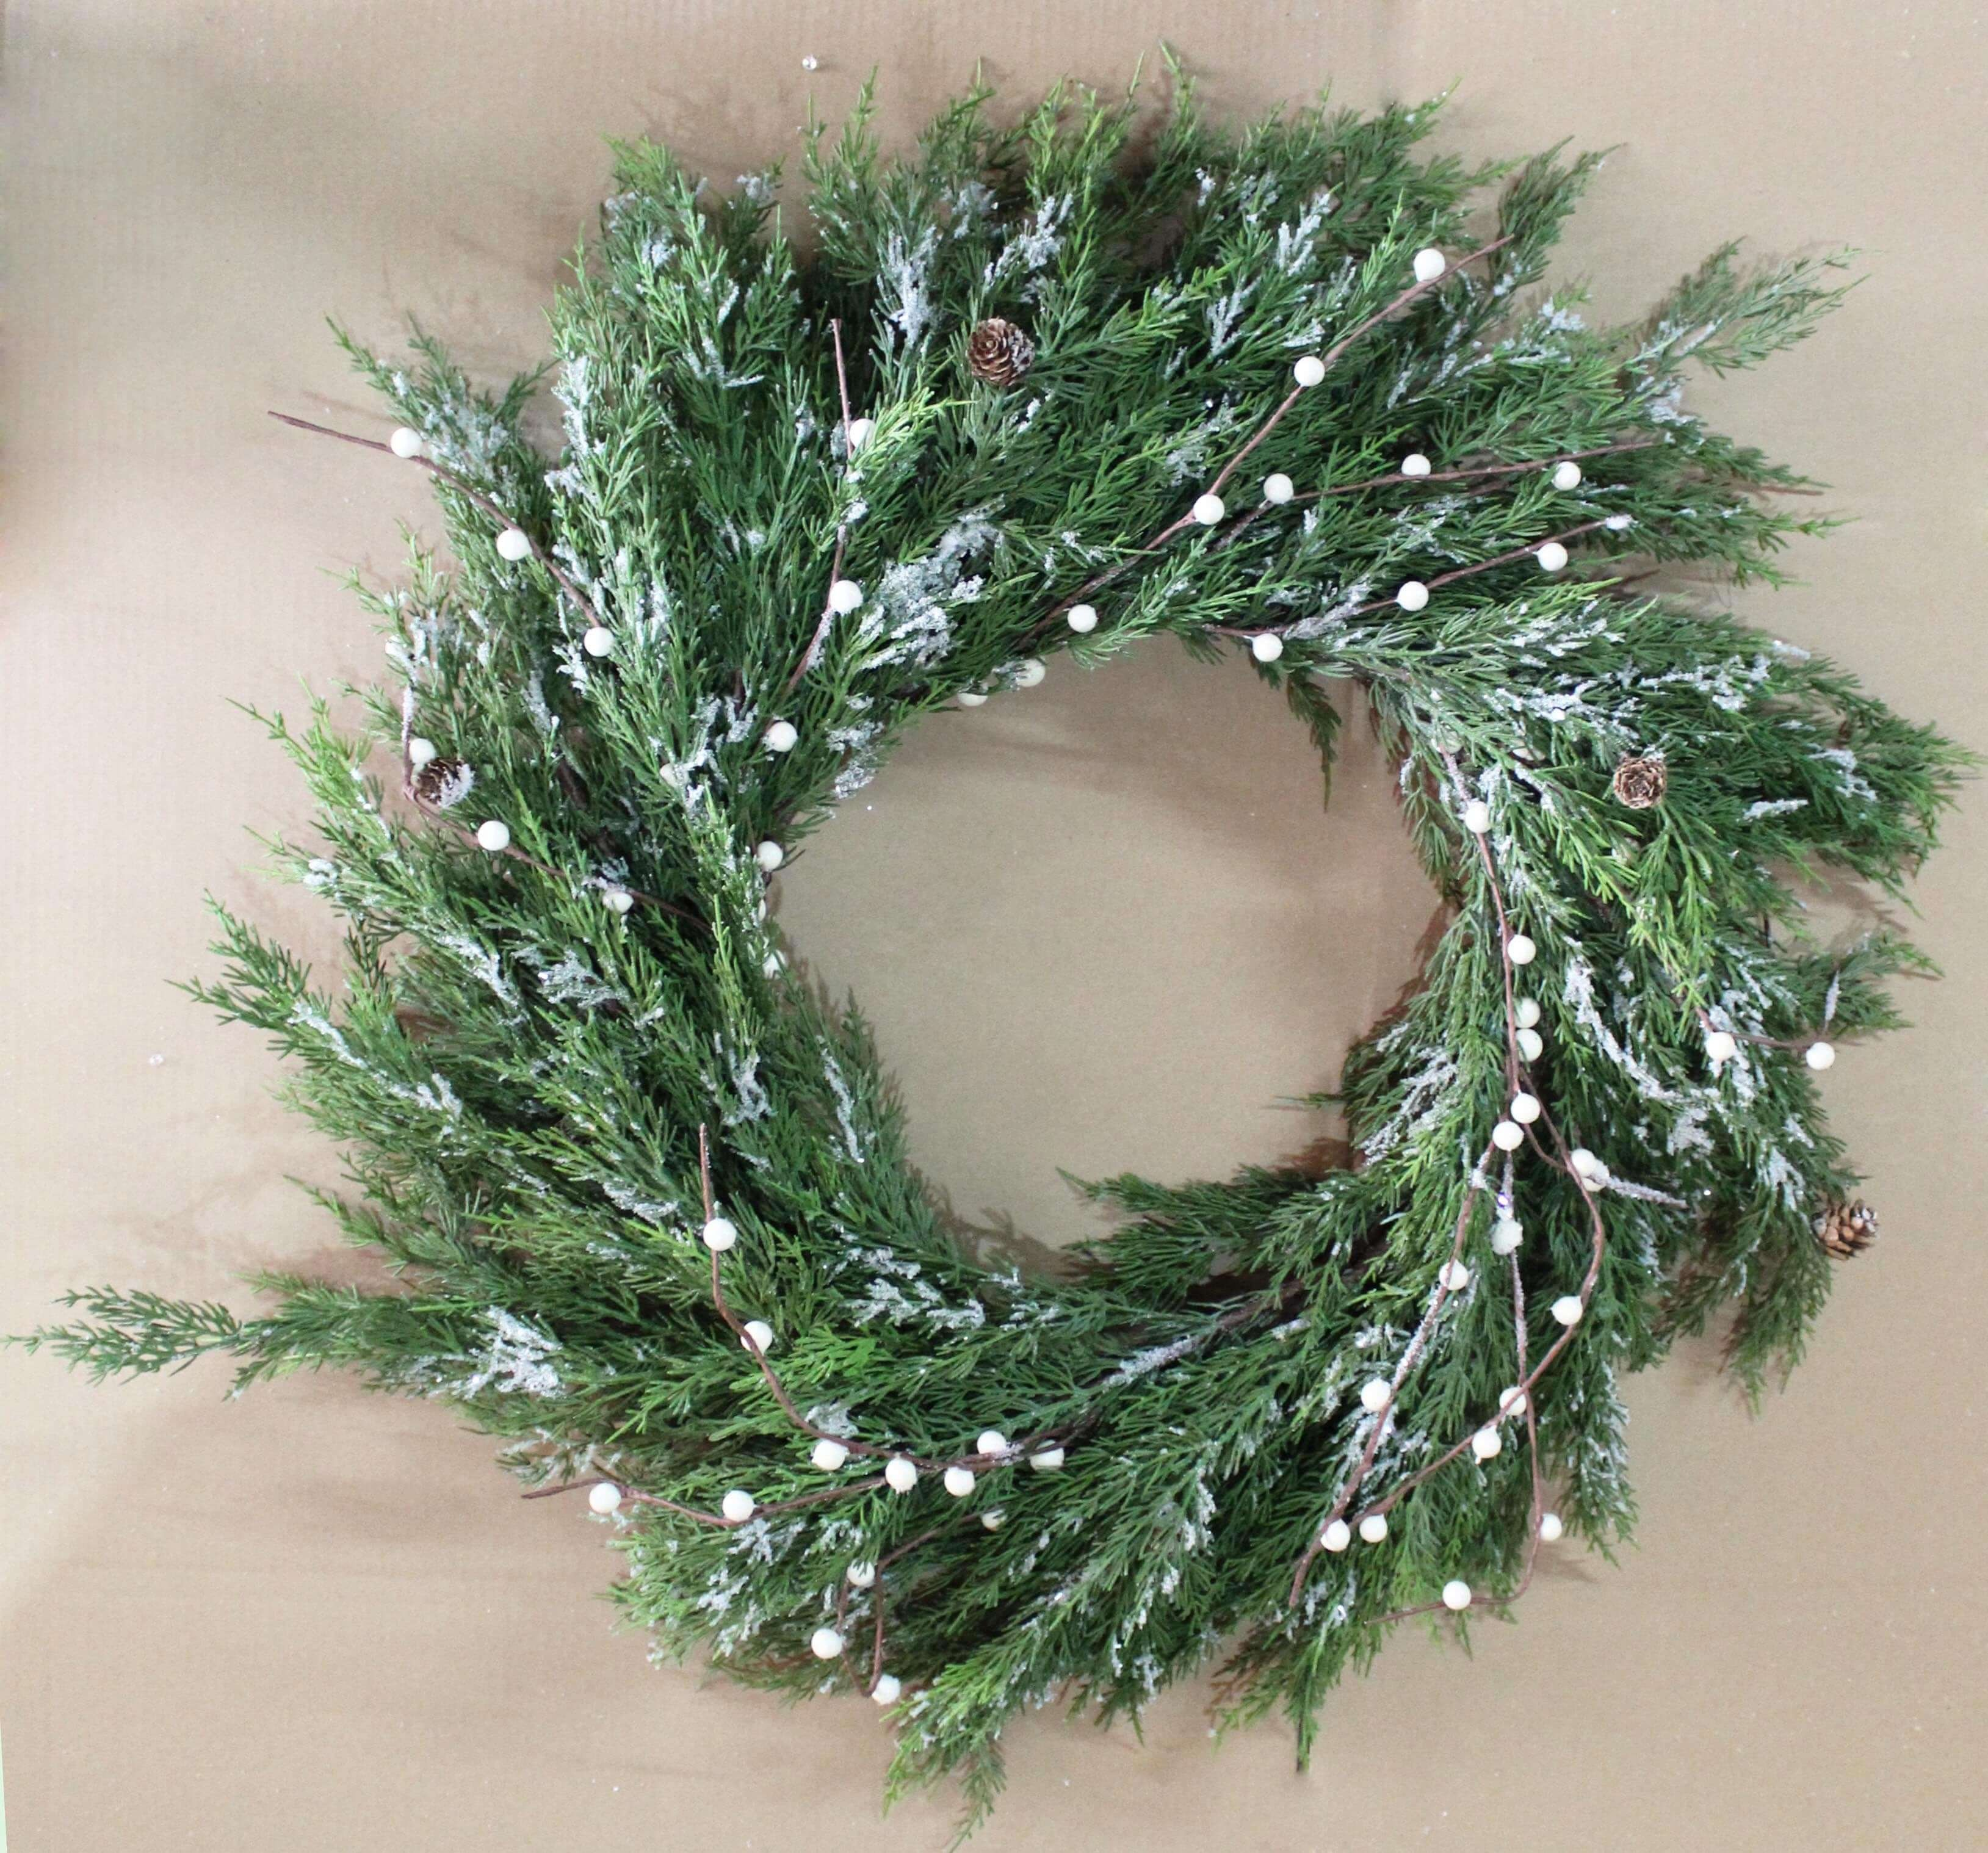 HBOC-1148 - Christmas Wreath with Snowdrops and Snow - 86cm